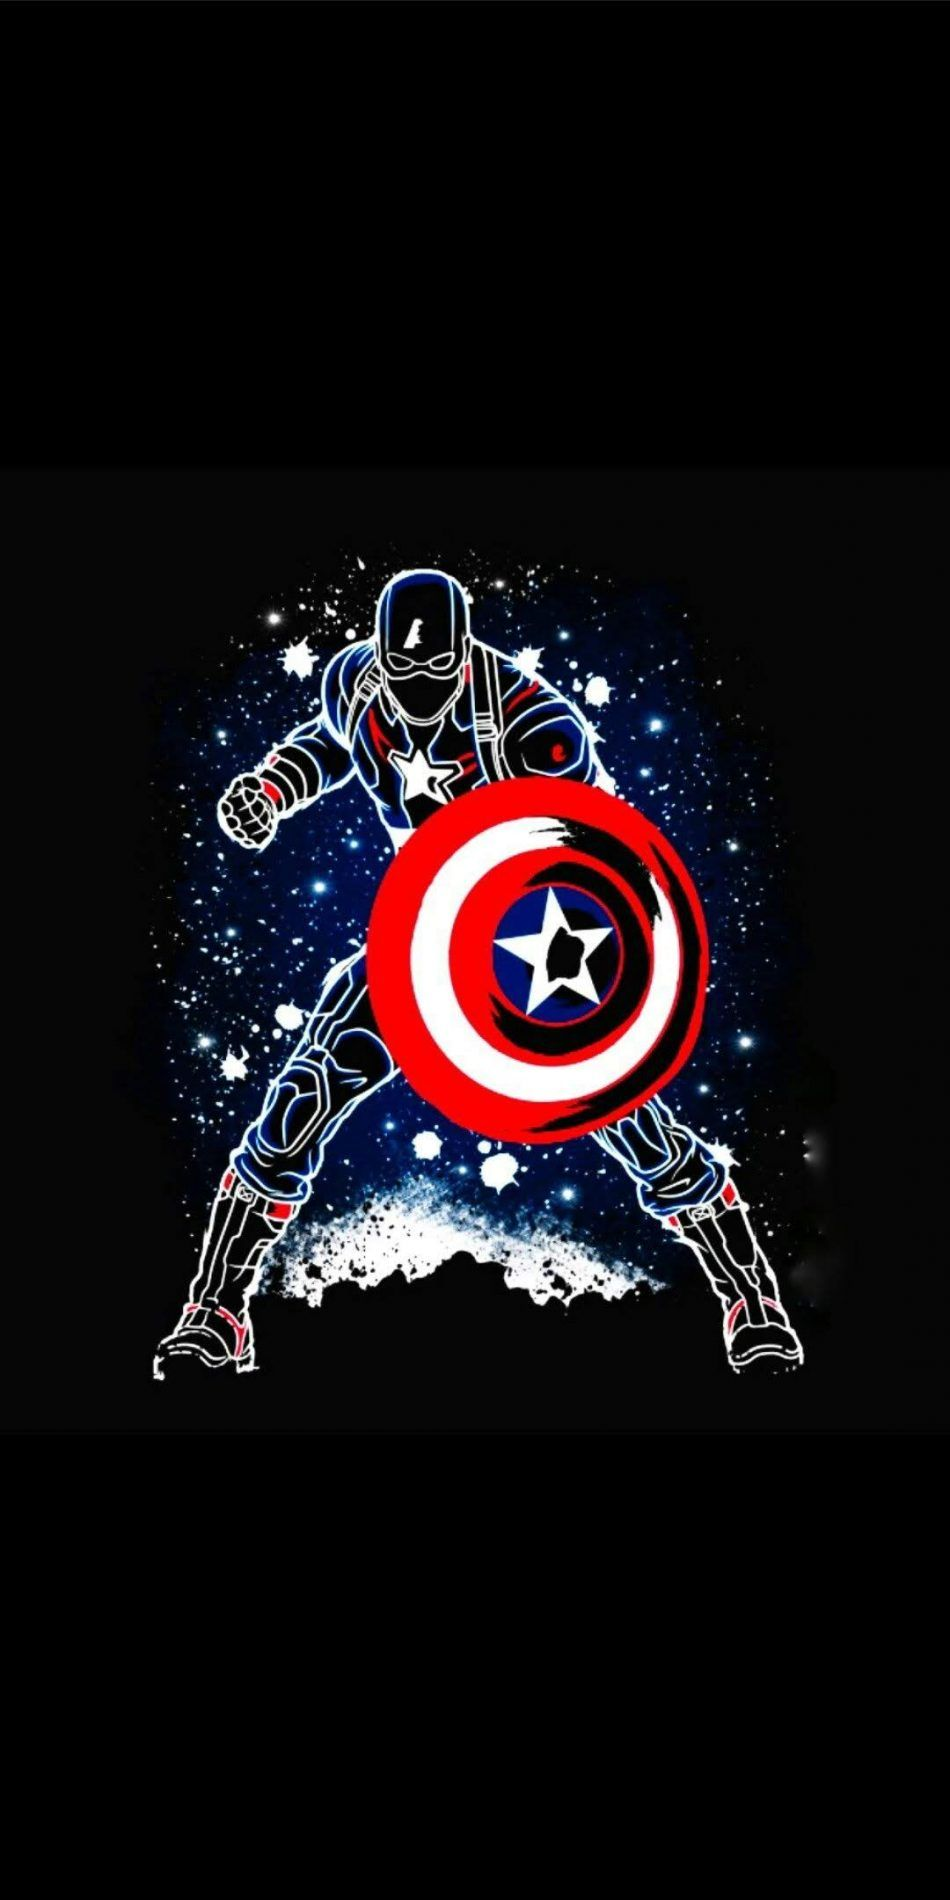 Captainamerica Iphone Wallpaper Marvel Wallpaper Marvel Superheroes Marvel Artwork